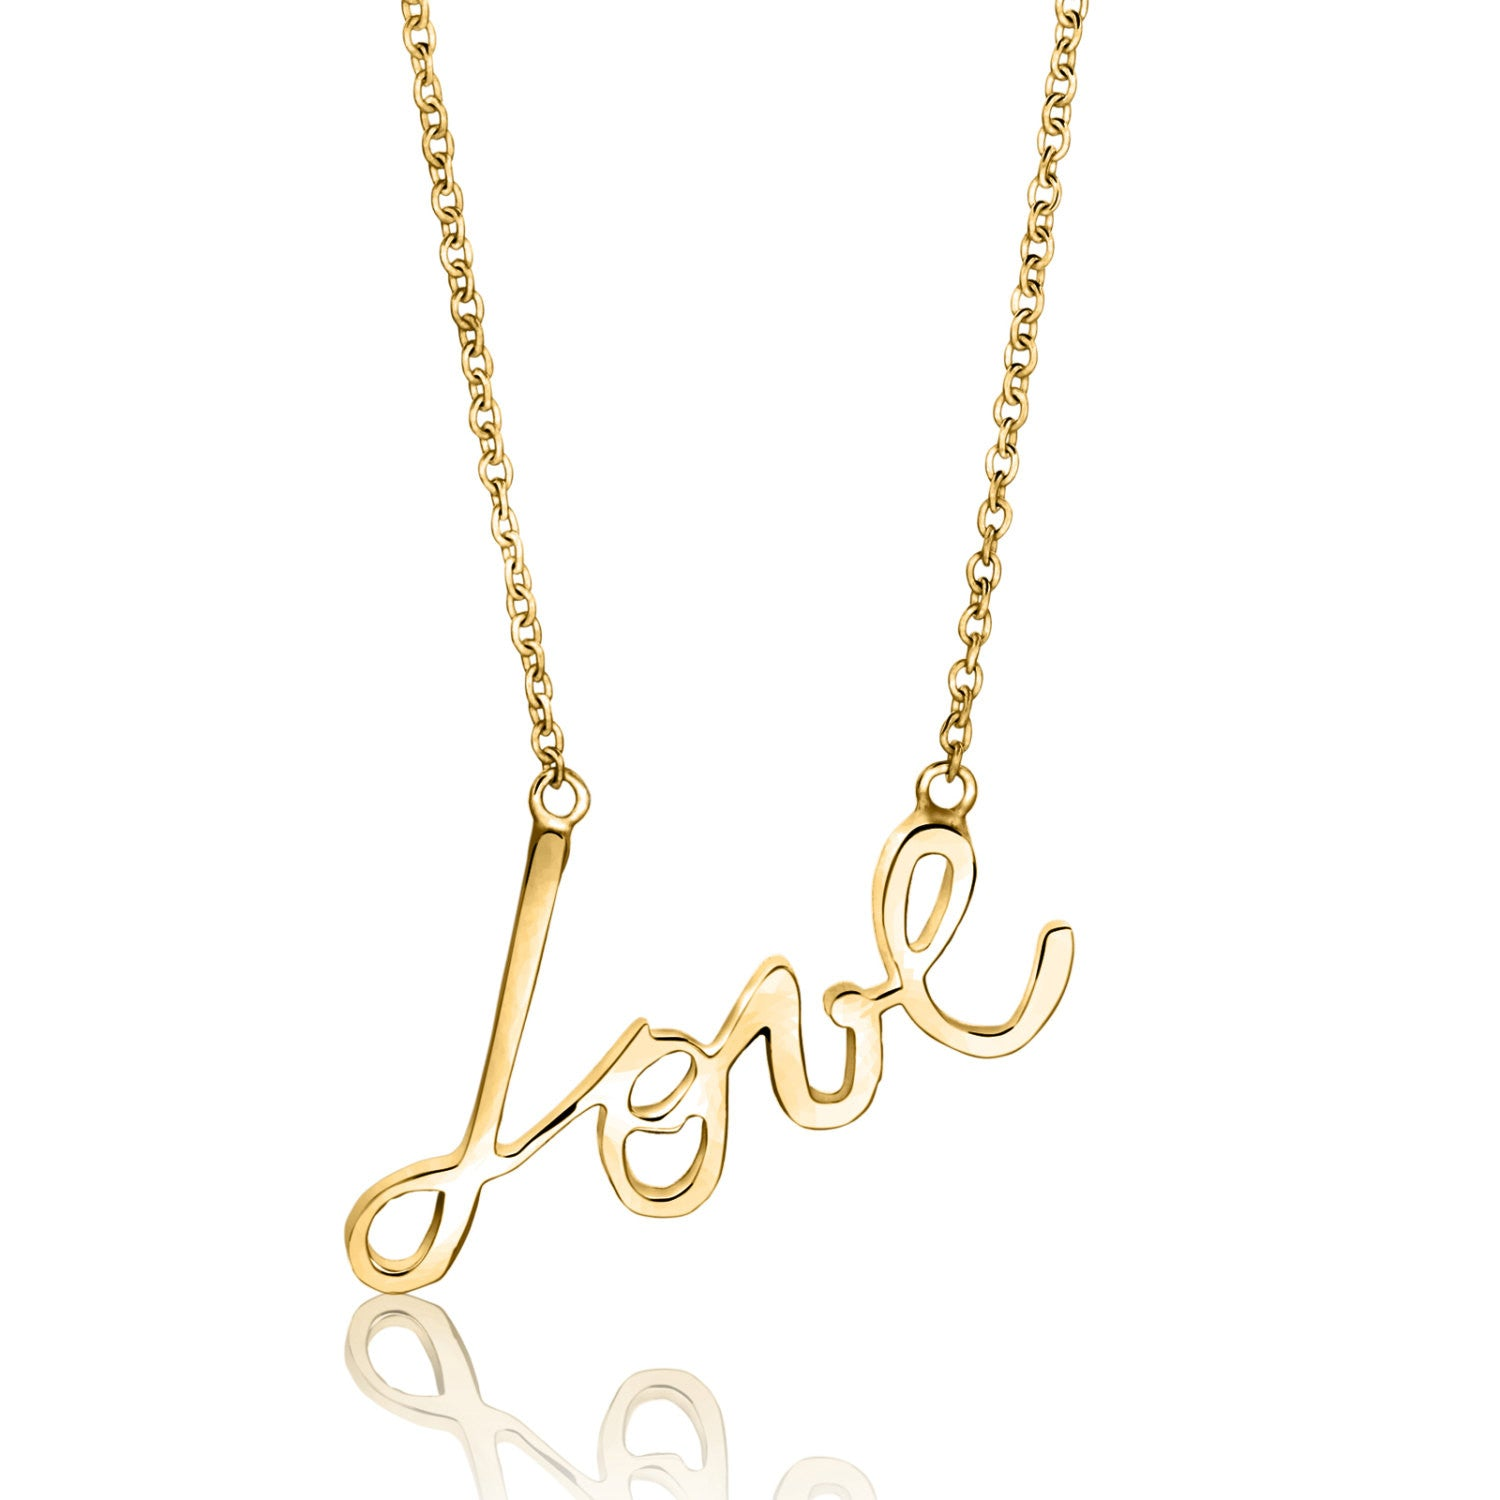 Lavin script love necklace, necklace, jewelry, valentines day, mothers day gift idea, wedding gift idea, bridesmaid gift